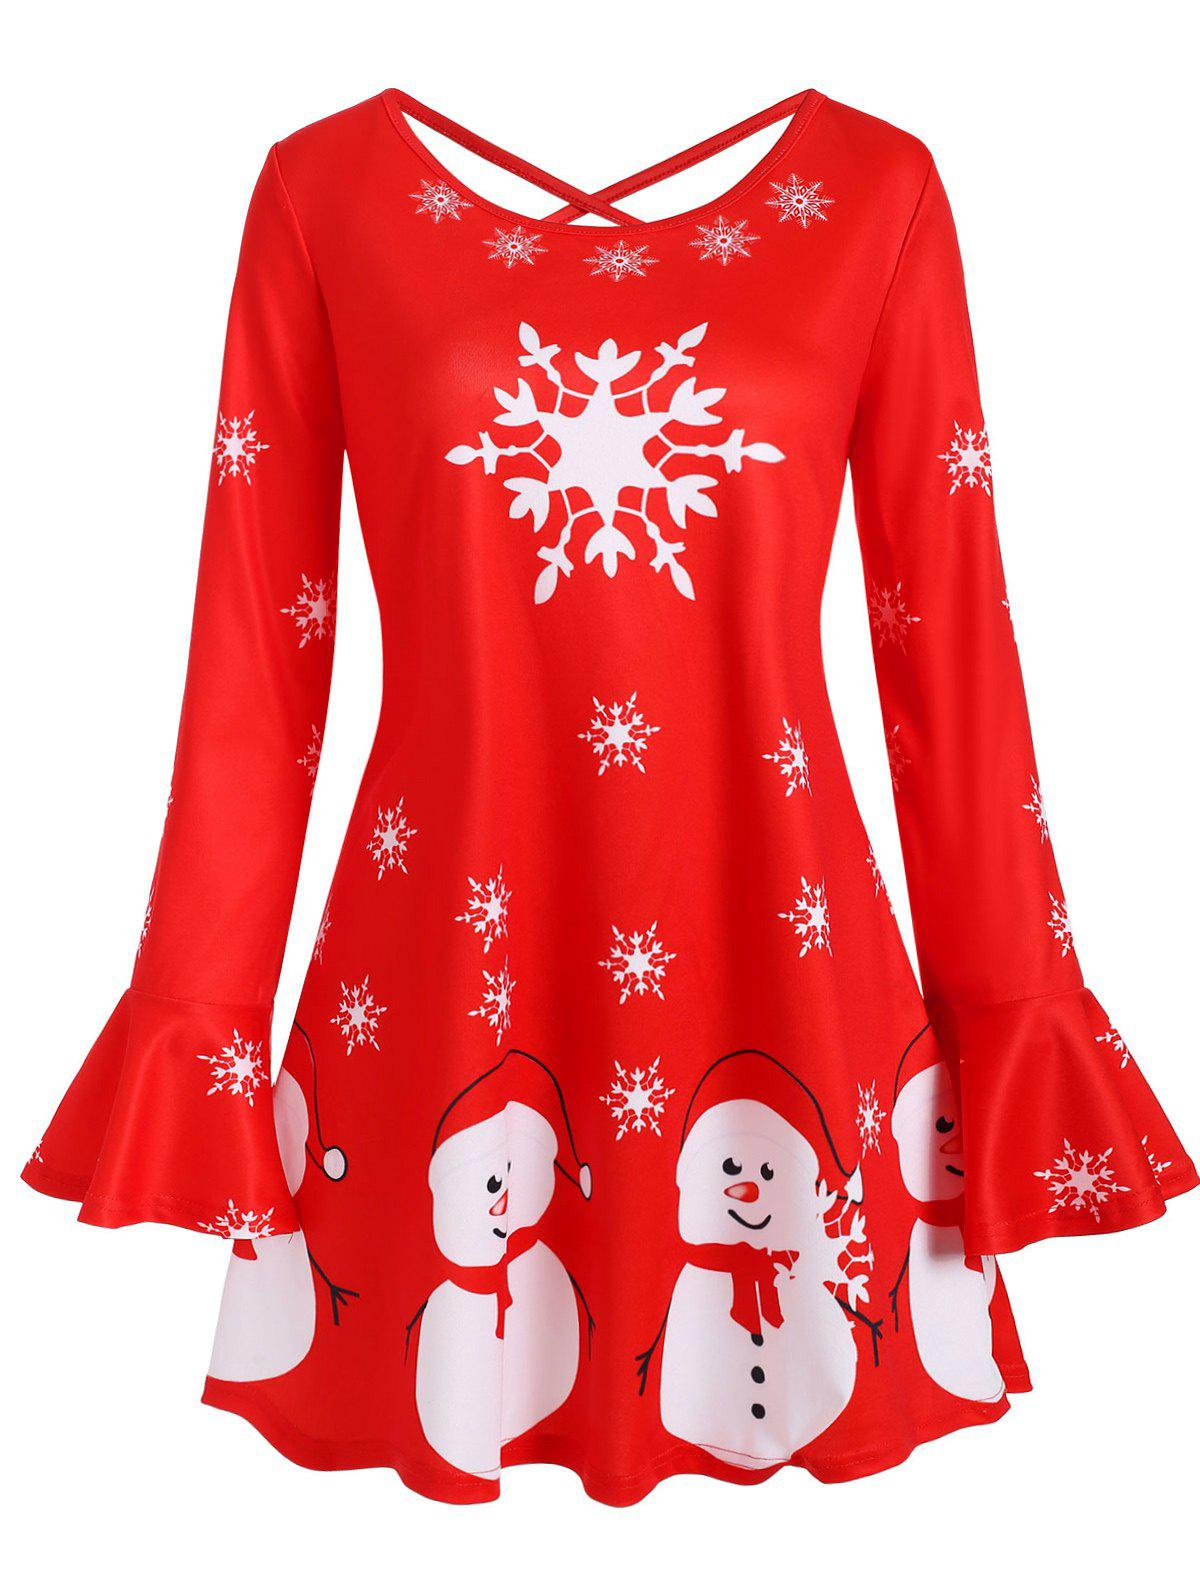 Affordable Snowman Snowflake Criss Cross Flare Sleeve Christmas Plus Size Top